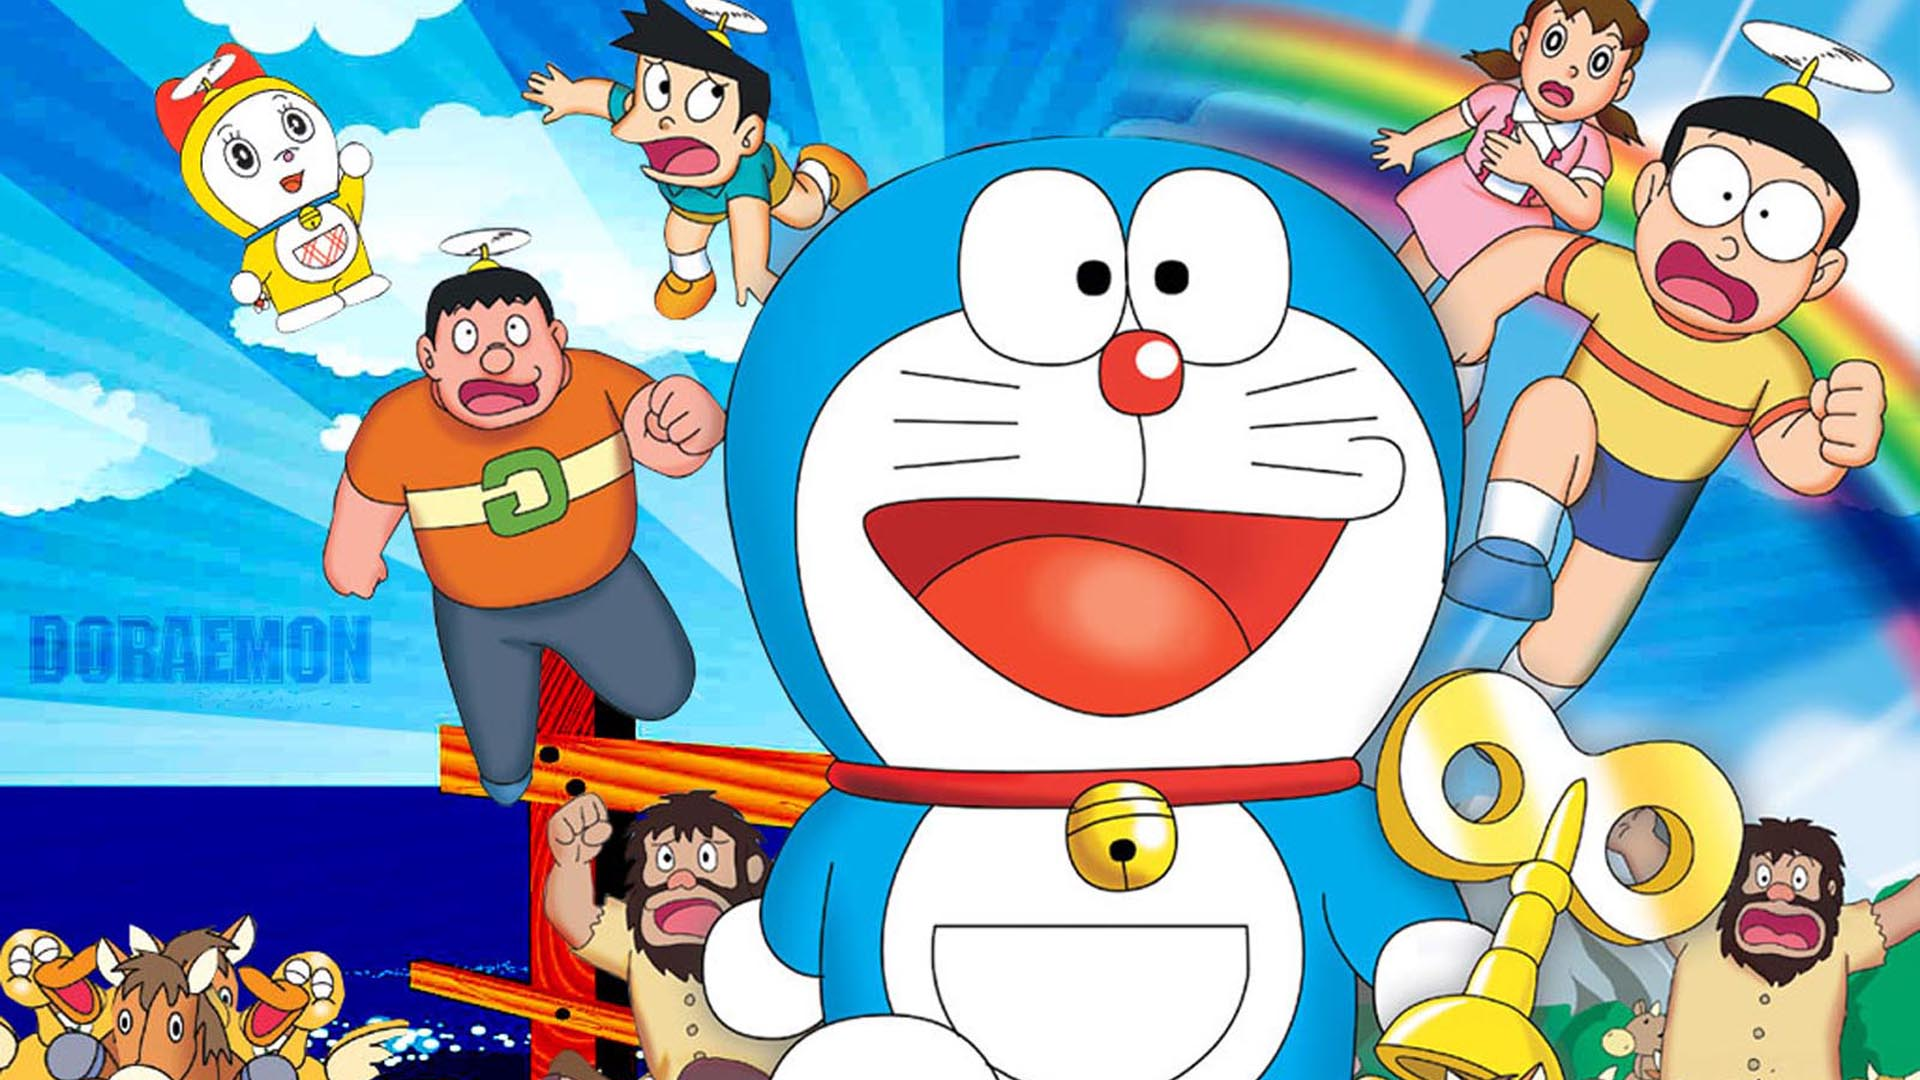 And many more funny images for: Doraemon 3D Cartoon HD for Android Wallpaper: Desktop HD ...